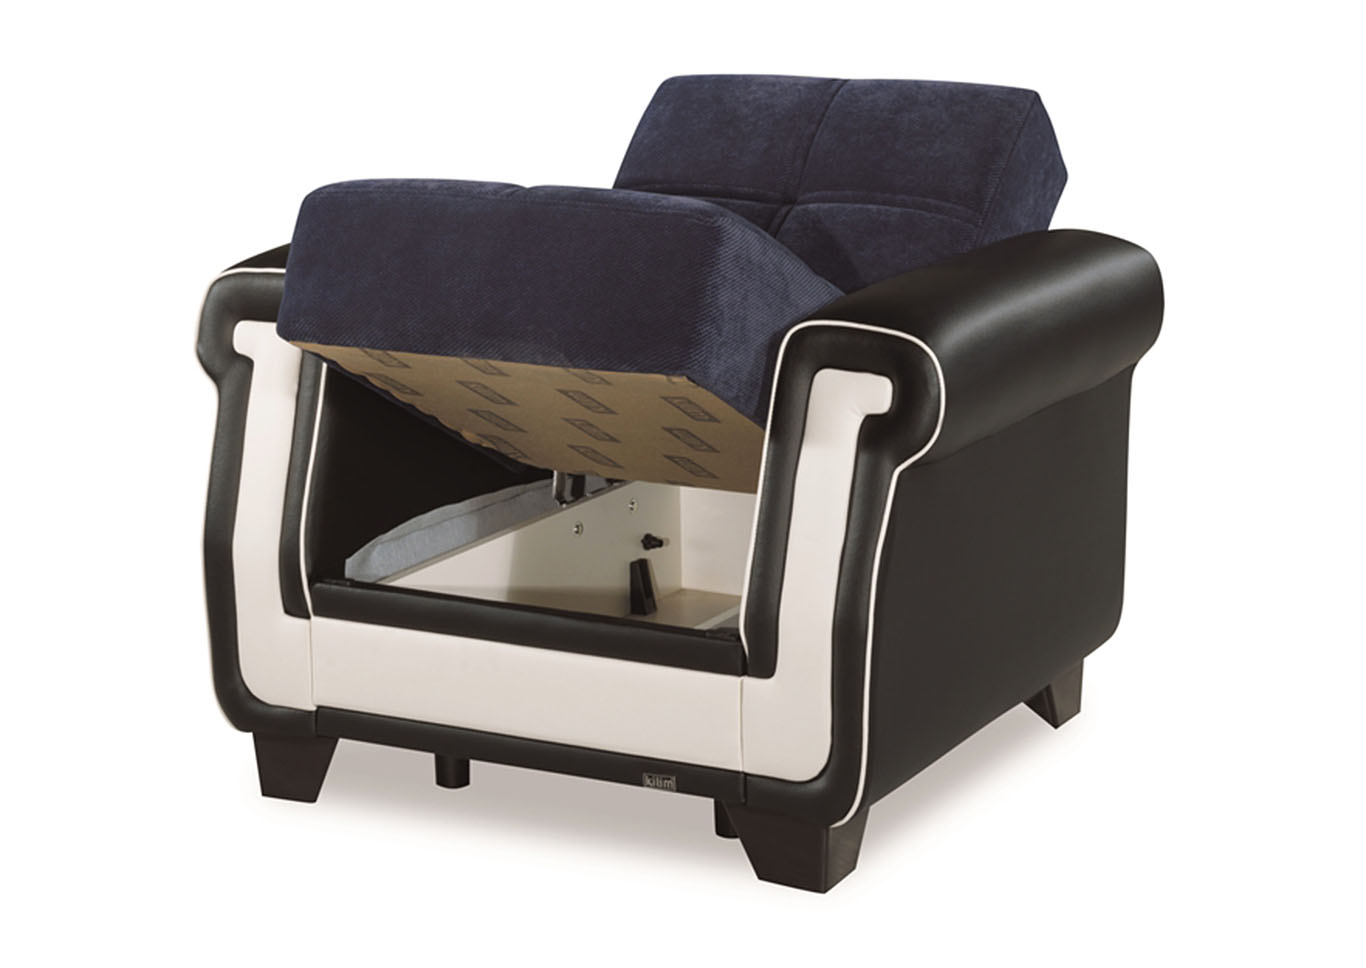 Proline Blue Microfiber Arm Chair,CasaMode Functional Furniture